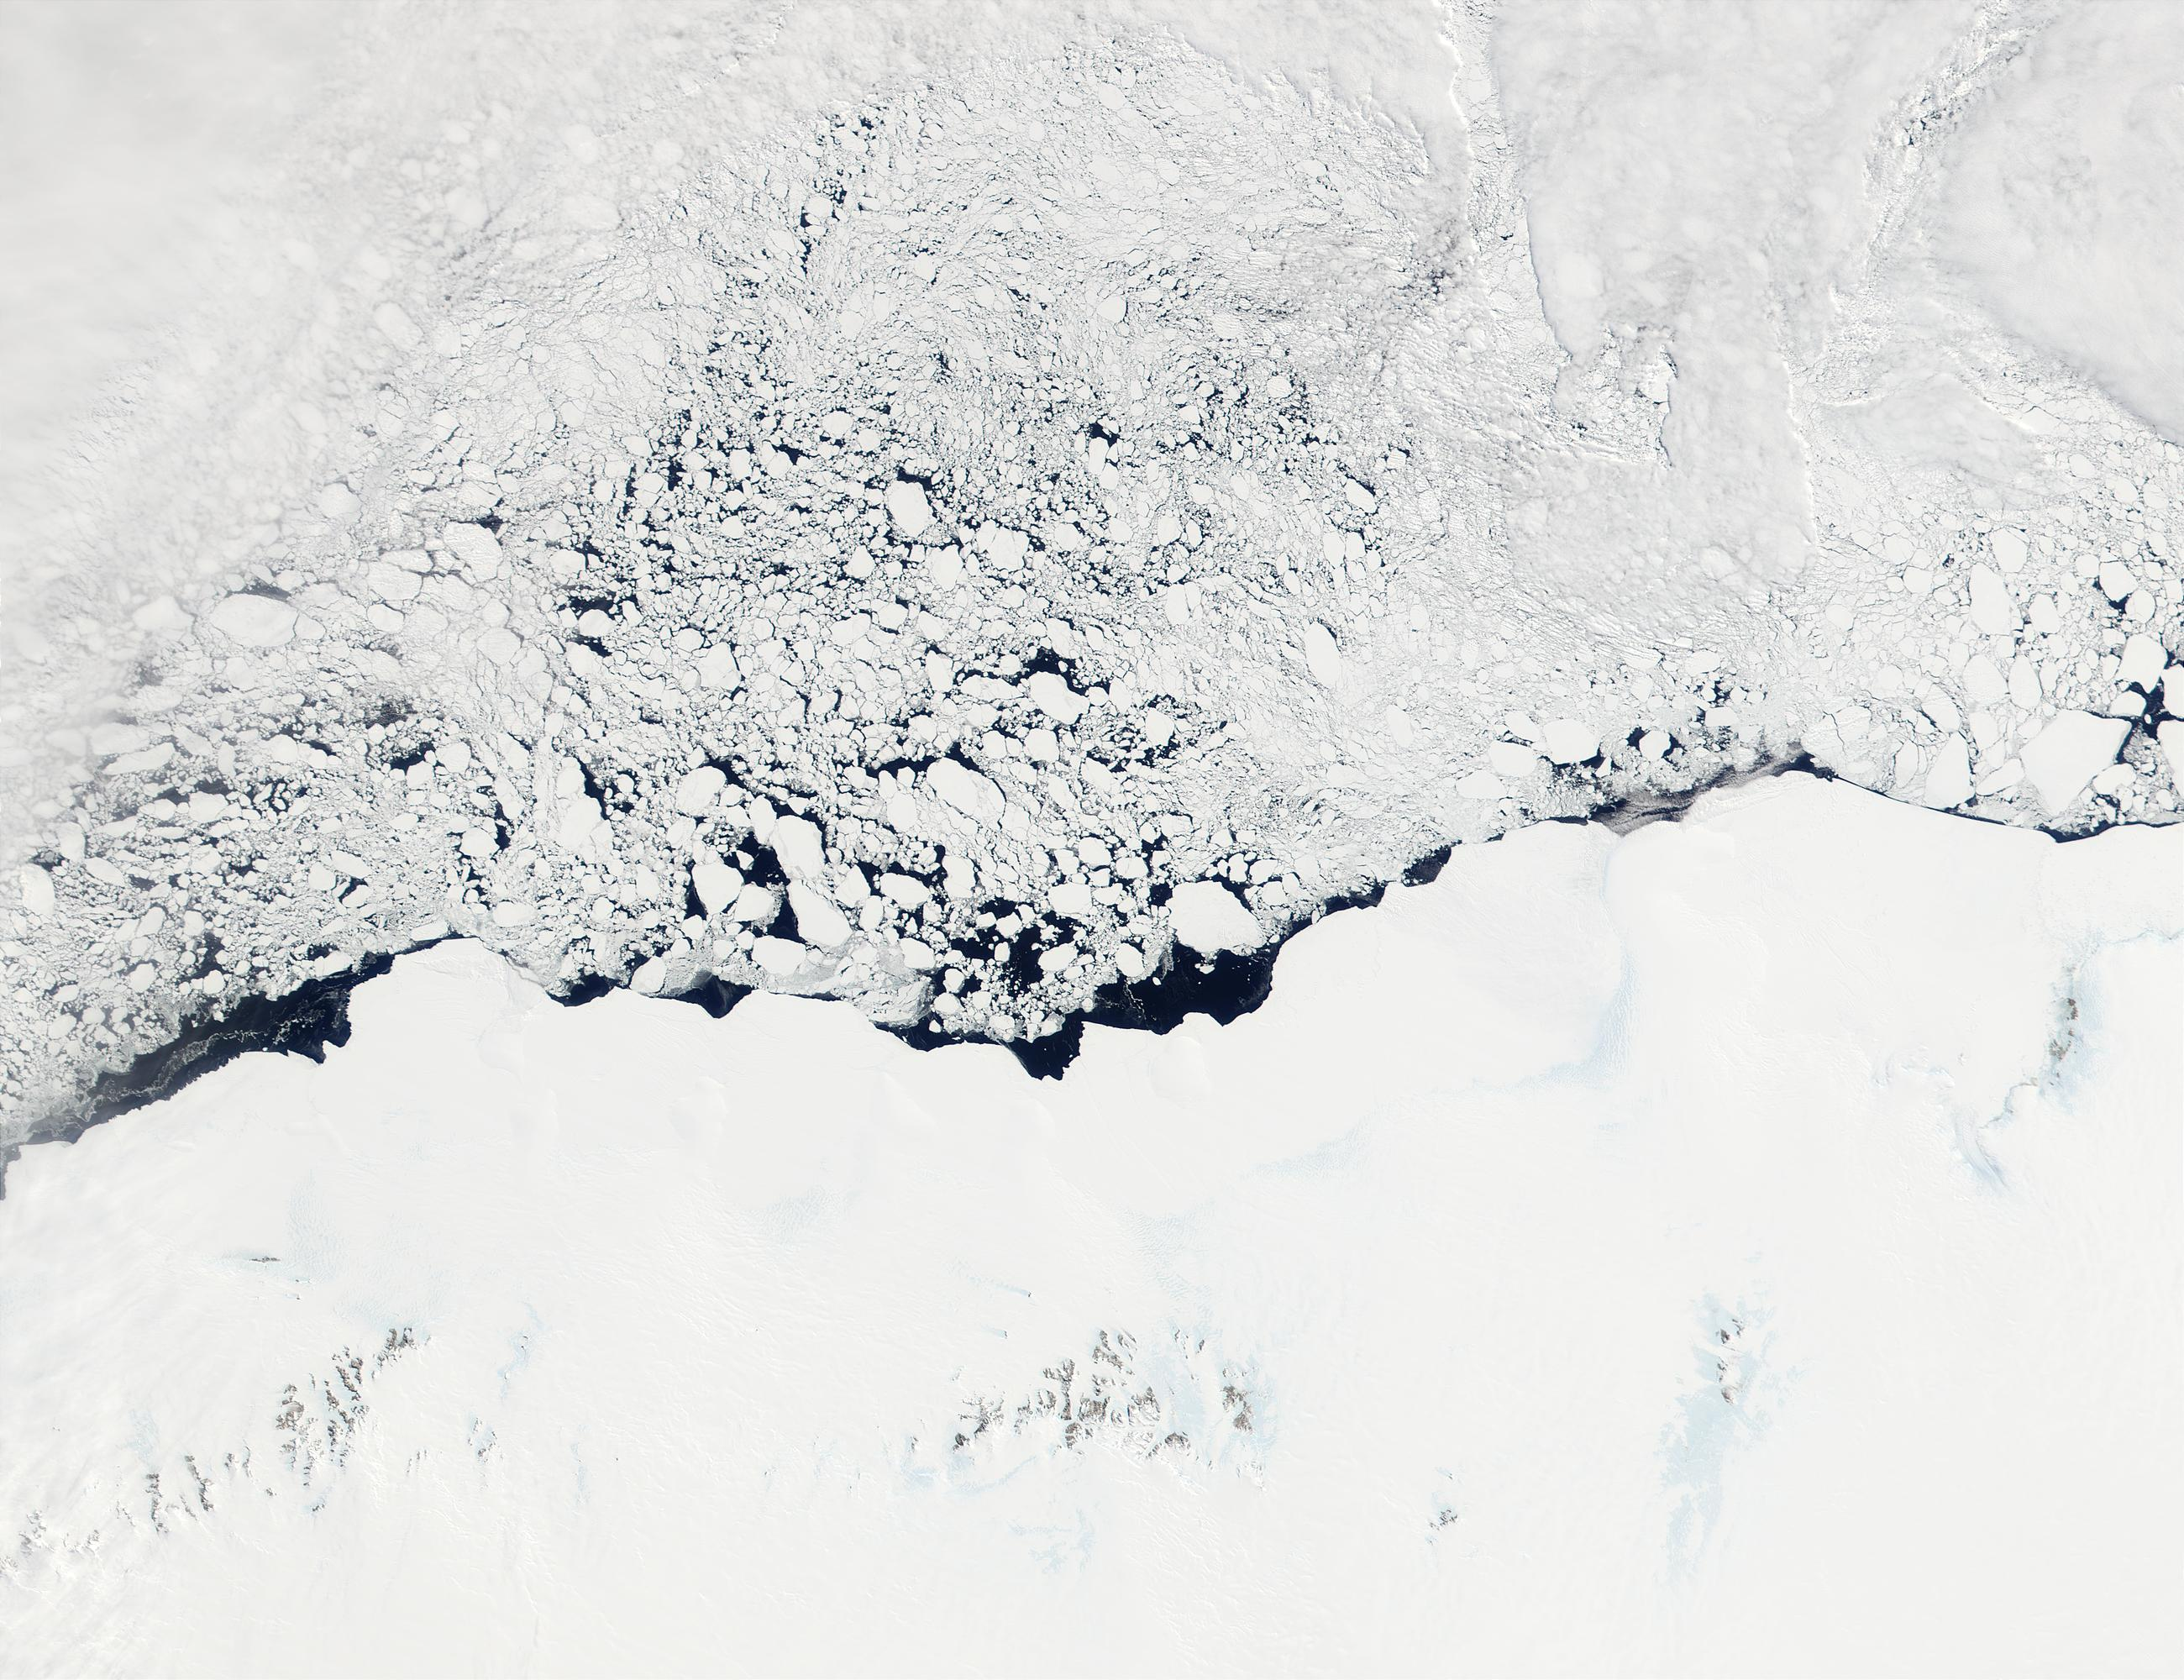 Princess Astrid Coast, Princess Ragnhild Coast, and Prince Harald Coast, Antarctica - related image preview